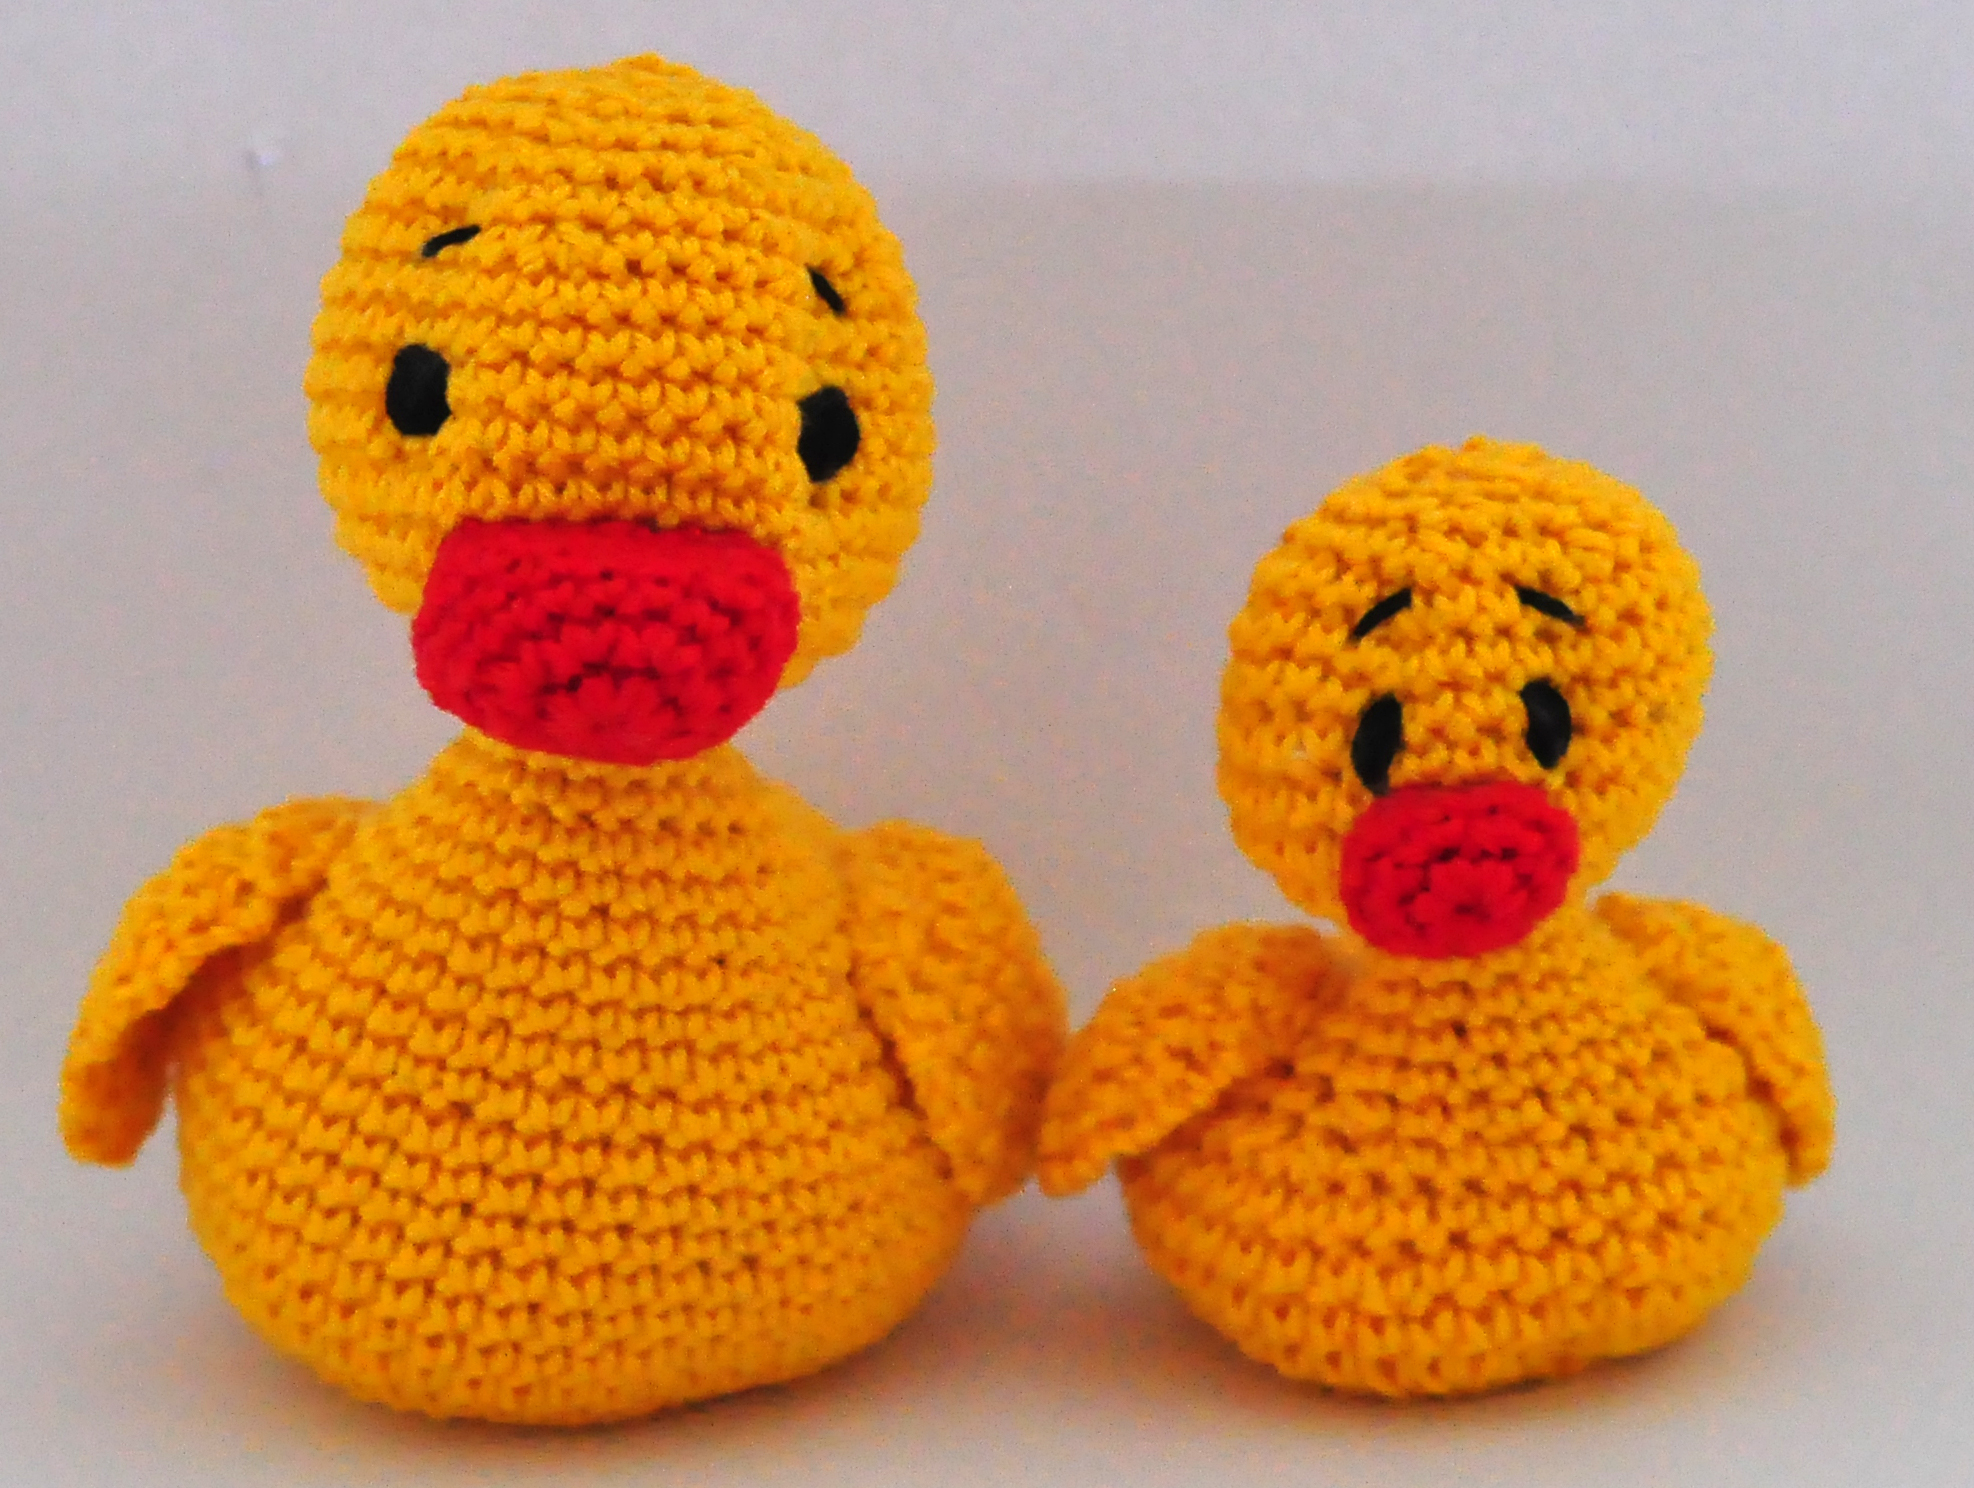 Cute crochet for Easter - little amigurumi duck - FREE PATTERN ... | 1488x1974